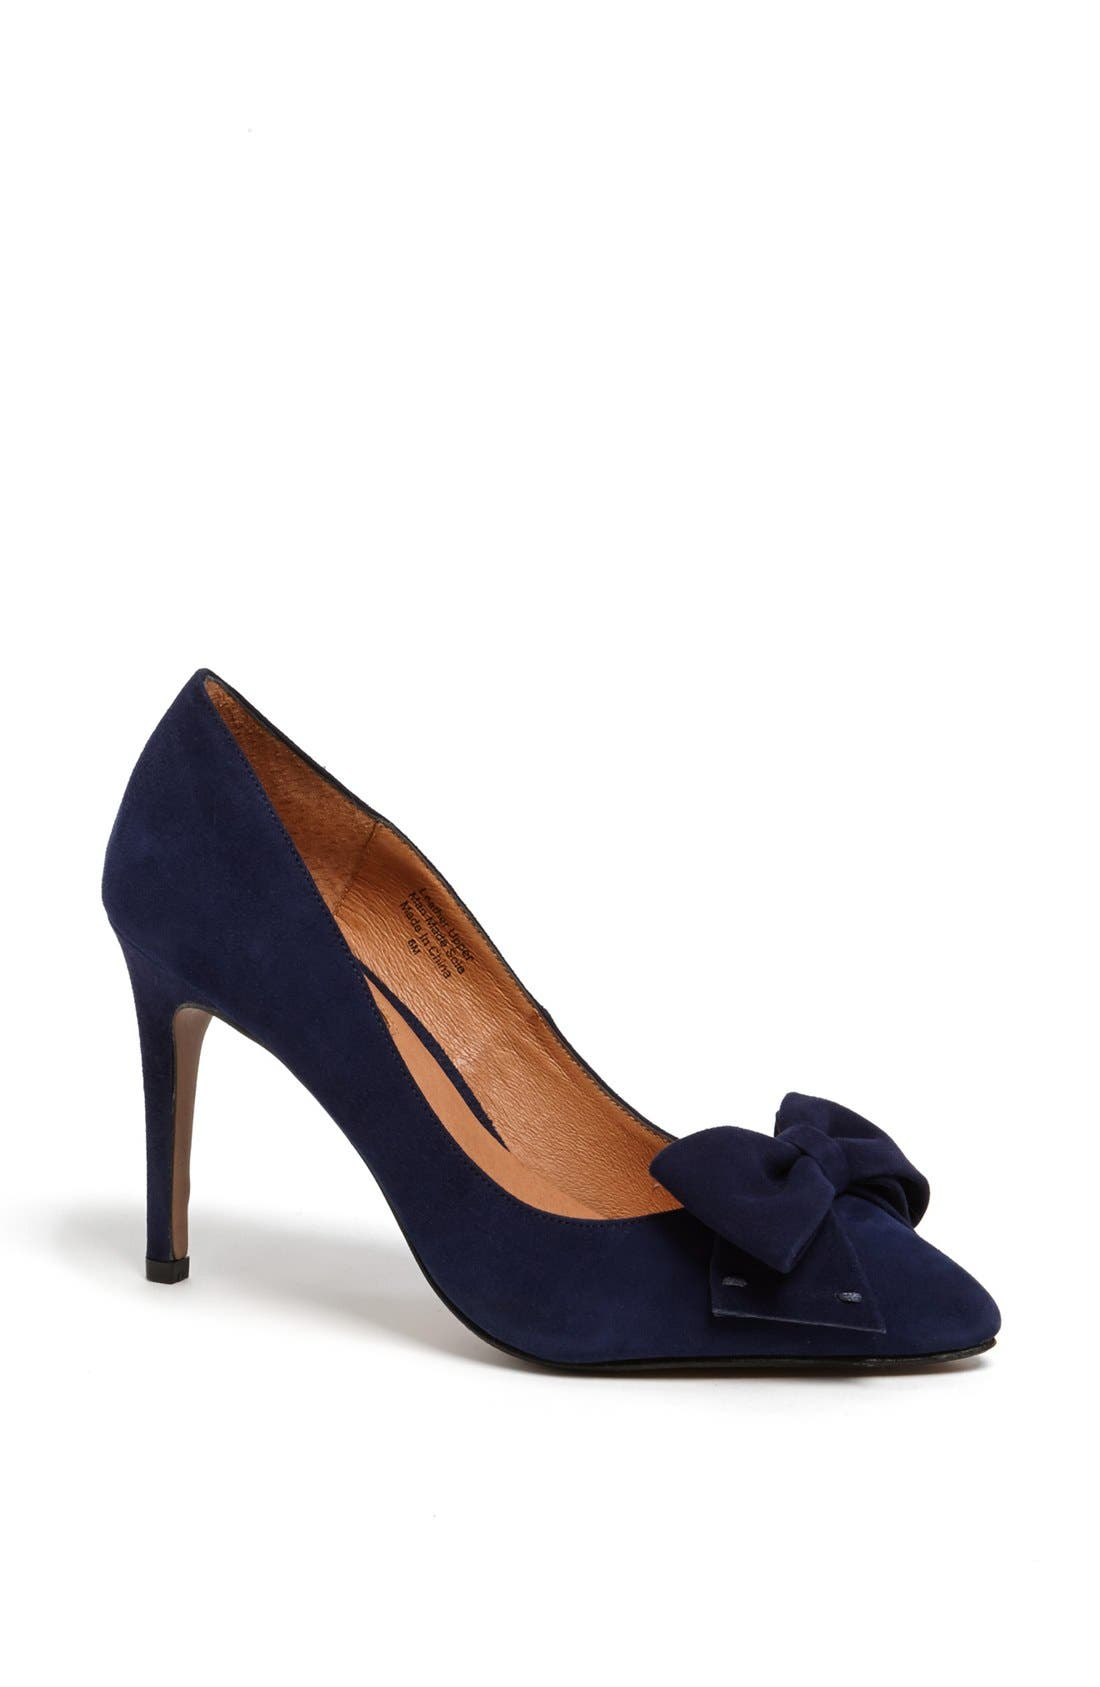 Alternate Image 1 Selected - Halogen® 'Marla' Suede Bow Pointy Toe Pump